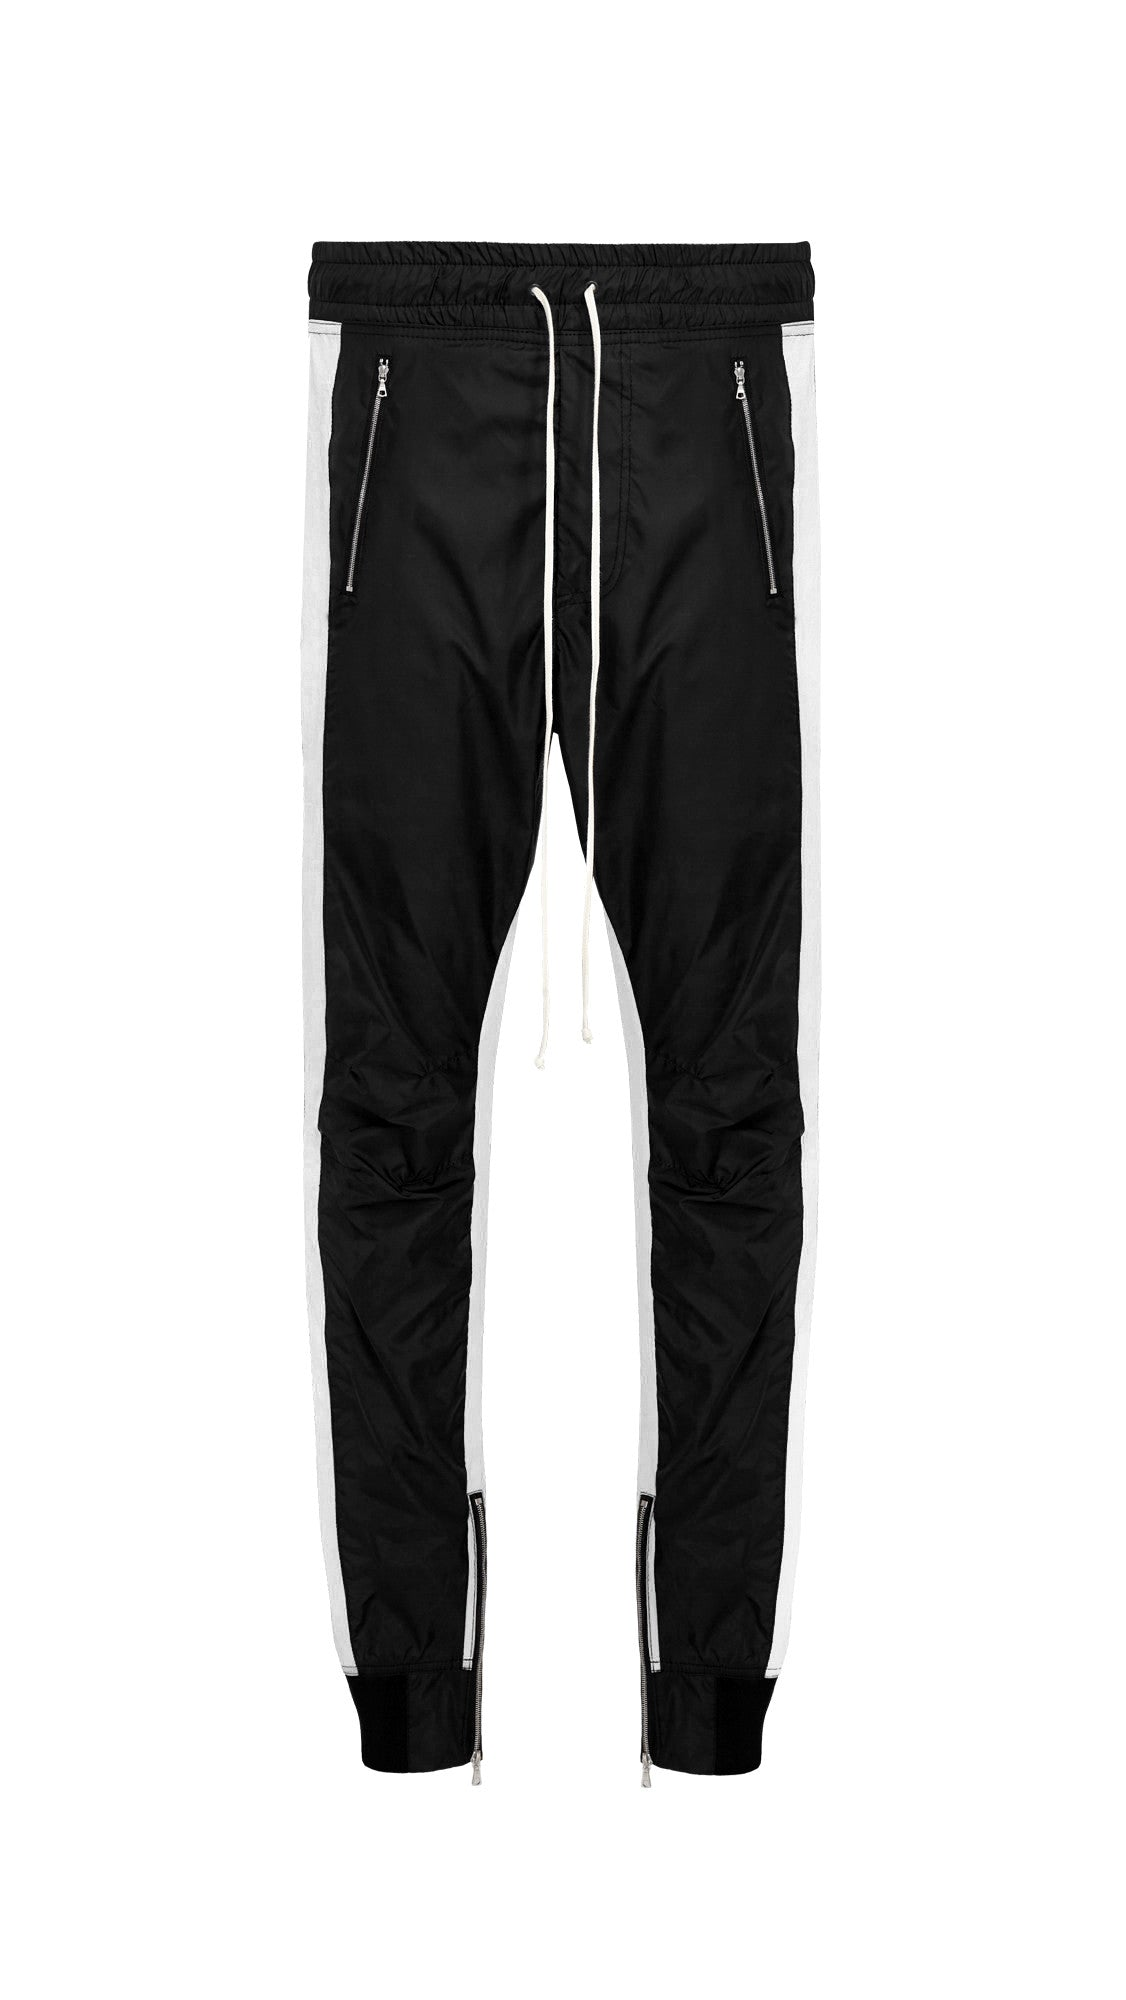 Stomper Track Pants - Black